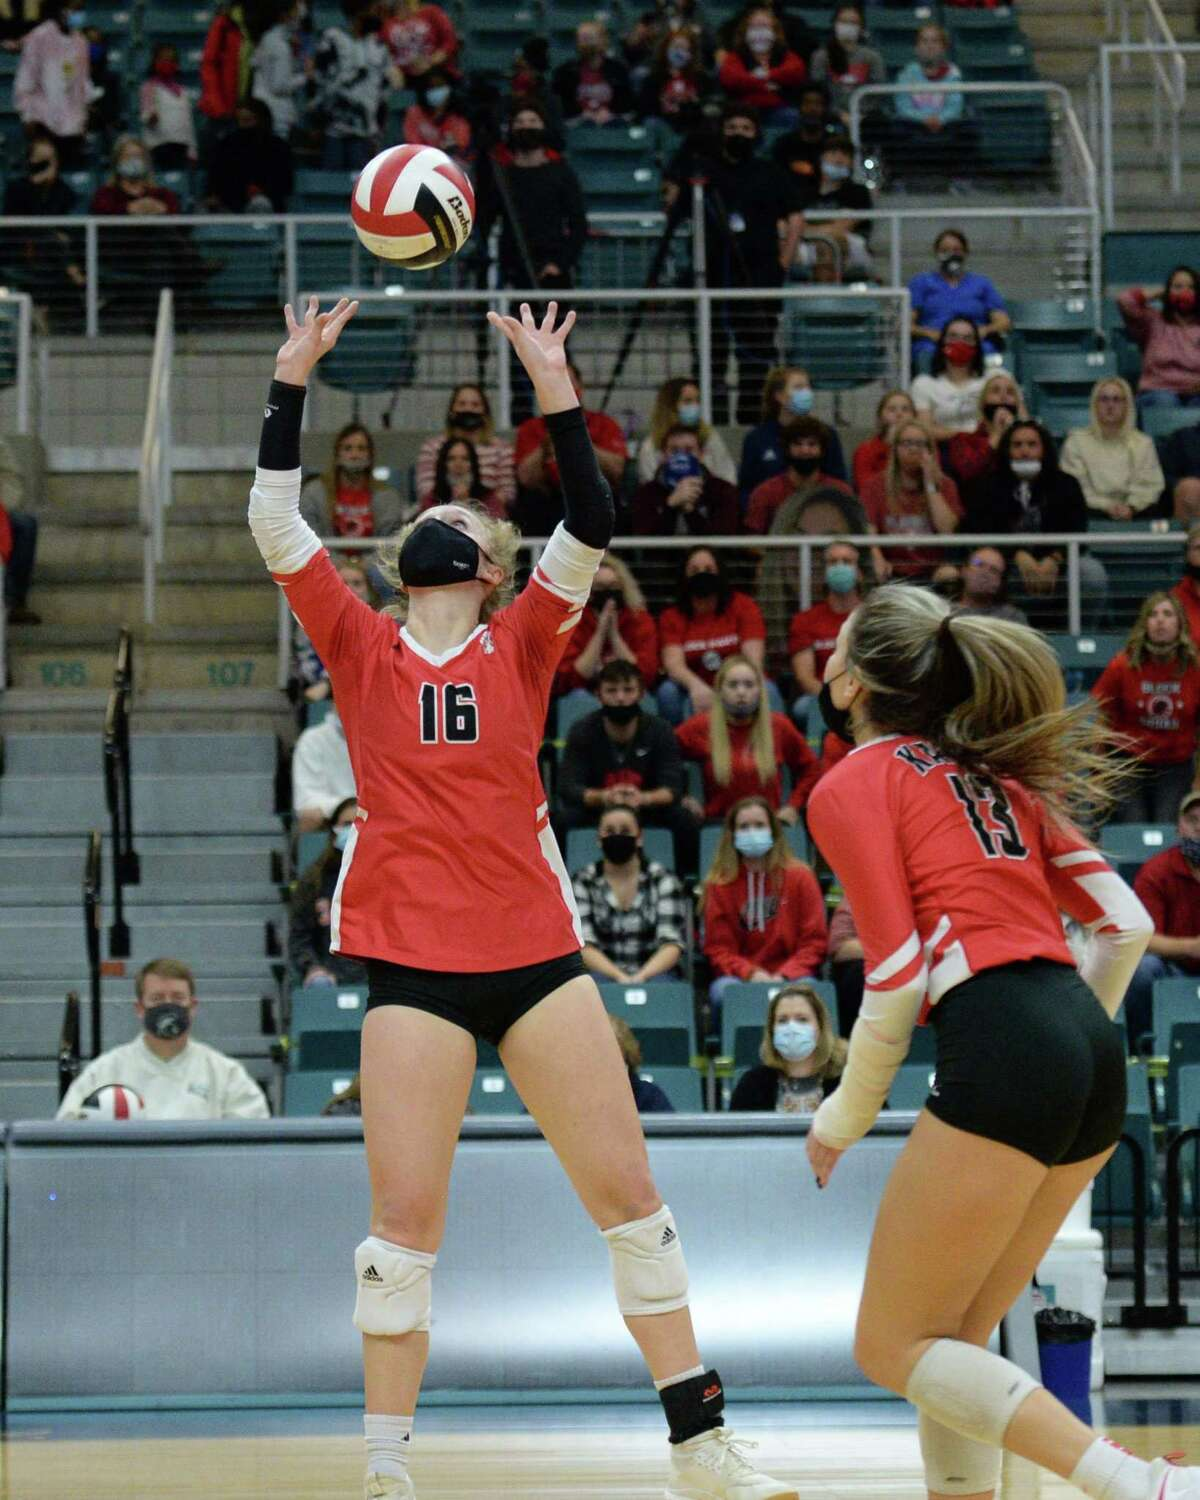 Maddie Waak (16) of Katy sets a ball for Reghan Jones (13) during the first set of the 6A Region 3 Championship game between the Katy Tigers and the Seven Lakes Spartans on Friday, December 4, 2020 at Leonard Merrell Center, Katy, TX.